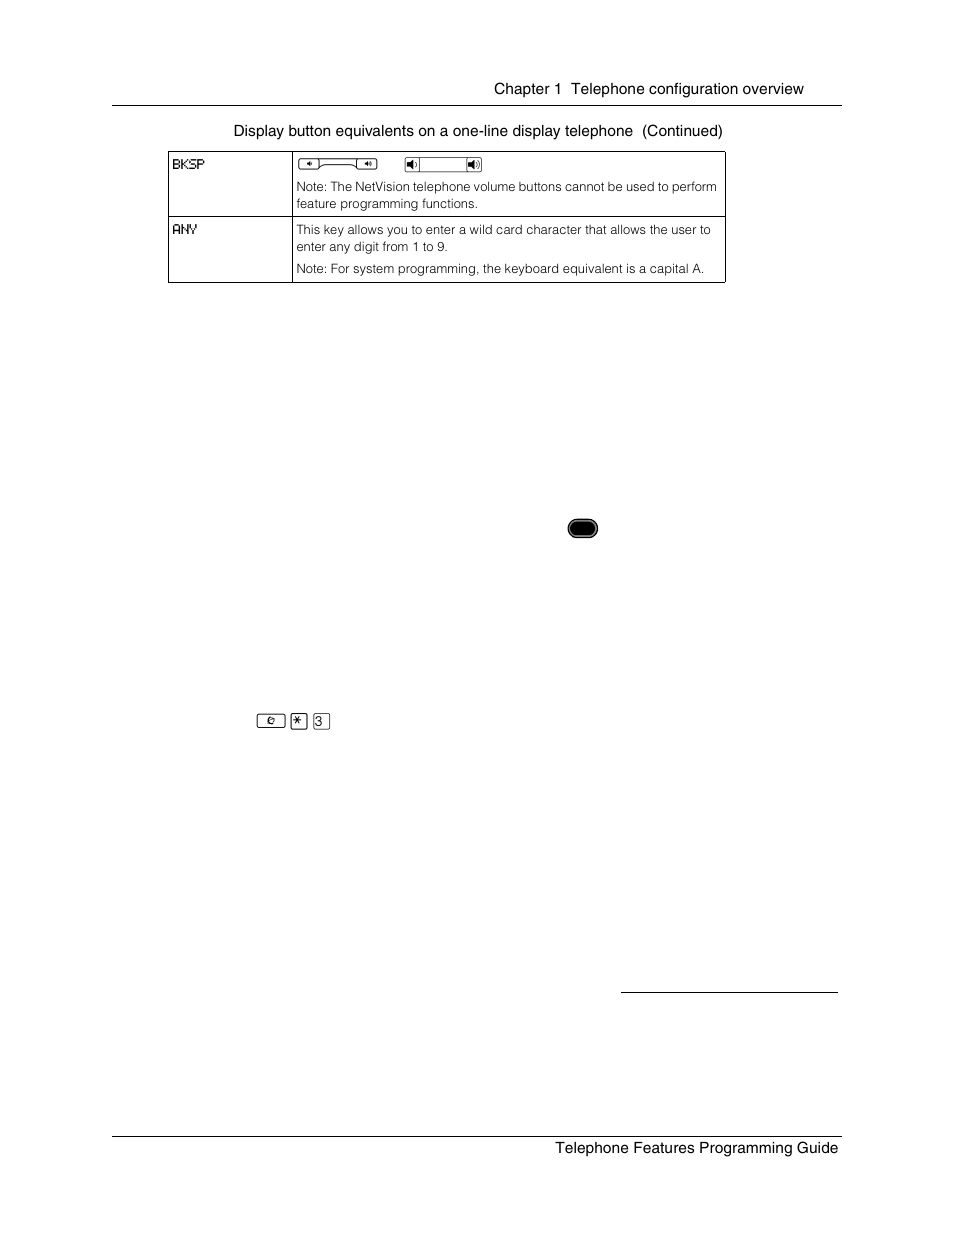 Memory buttons, Program buttons, Labeling your telephone